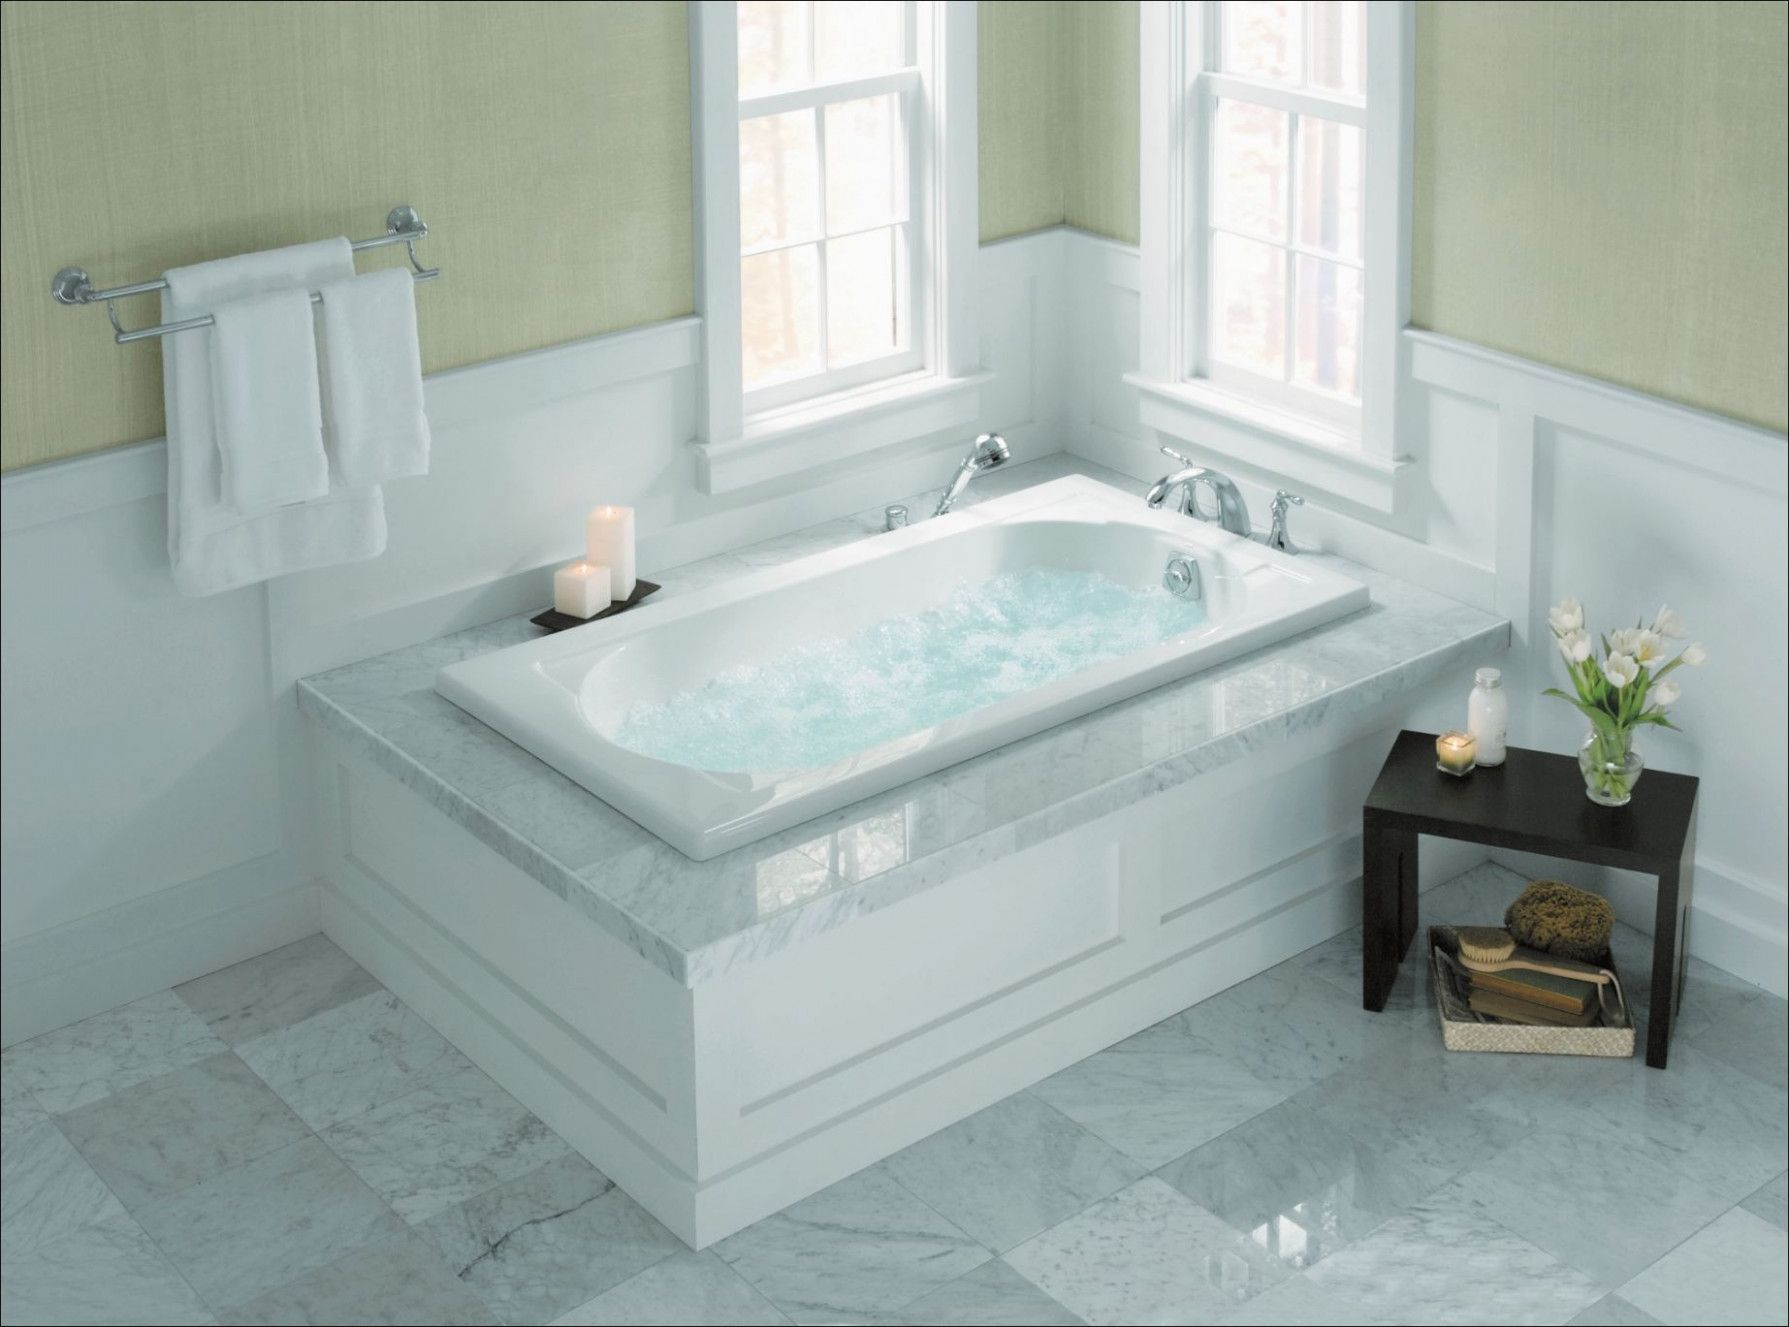 The Story Of Garden Bathtub Tile Bath Tubs Has Just Gone Viral! in ...